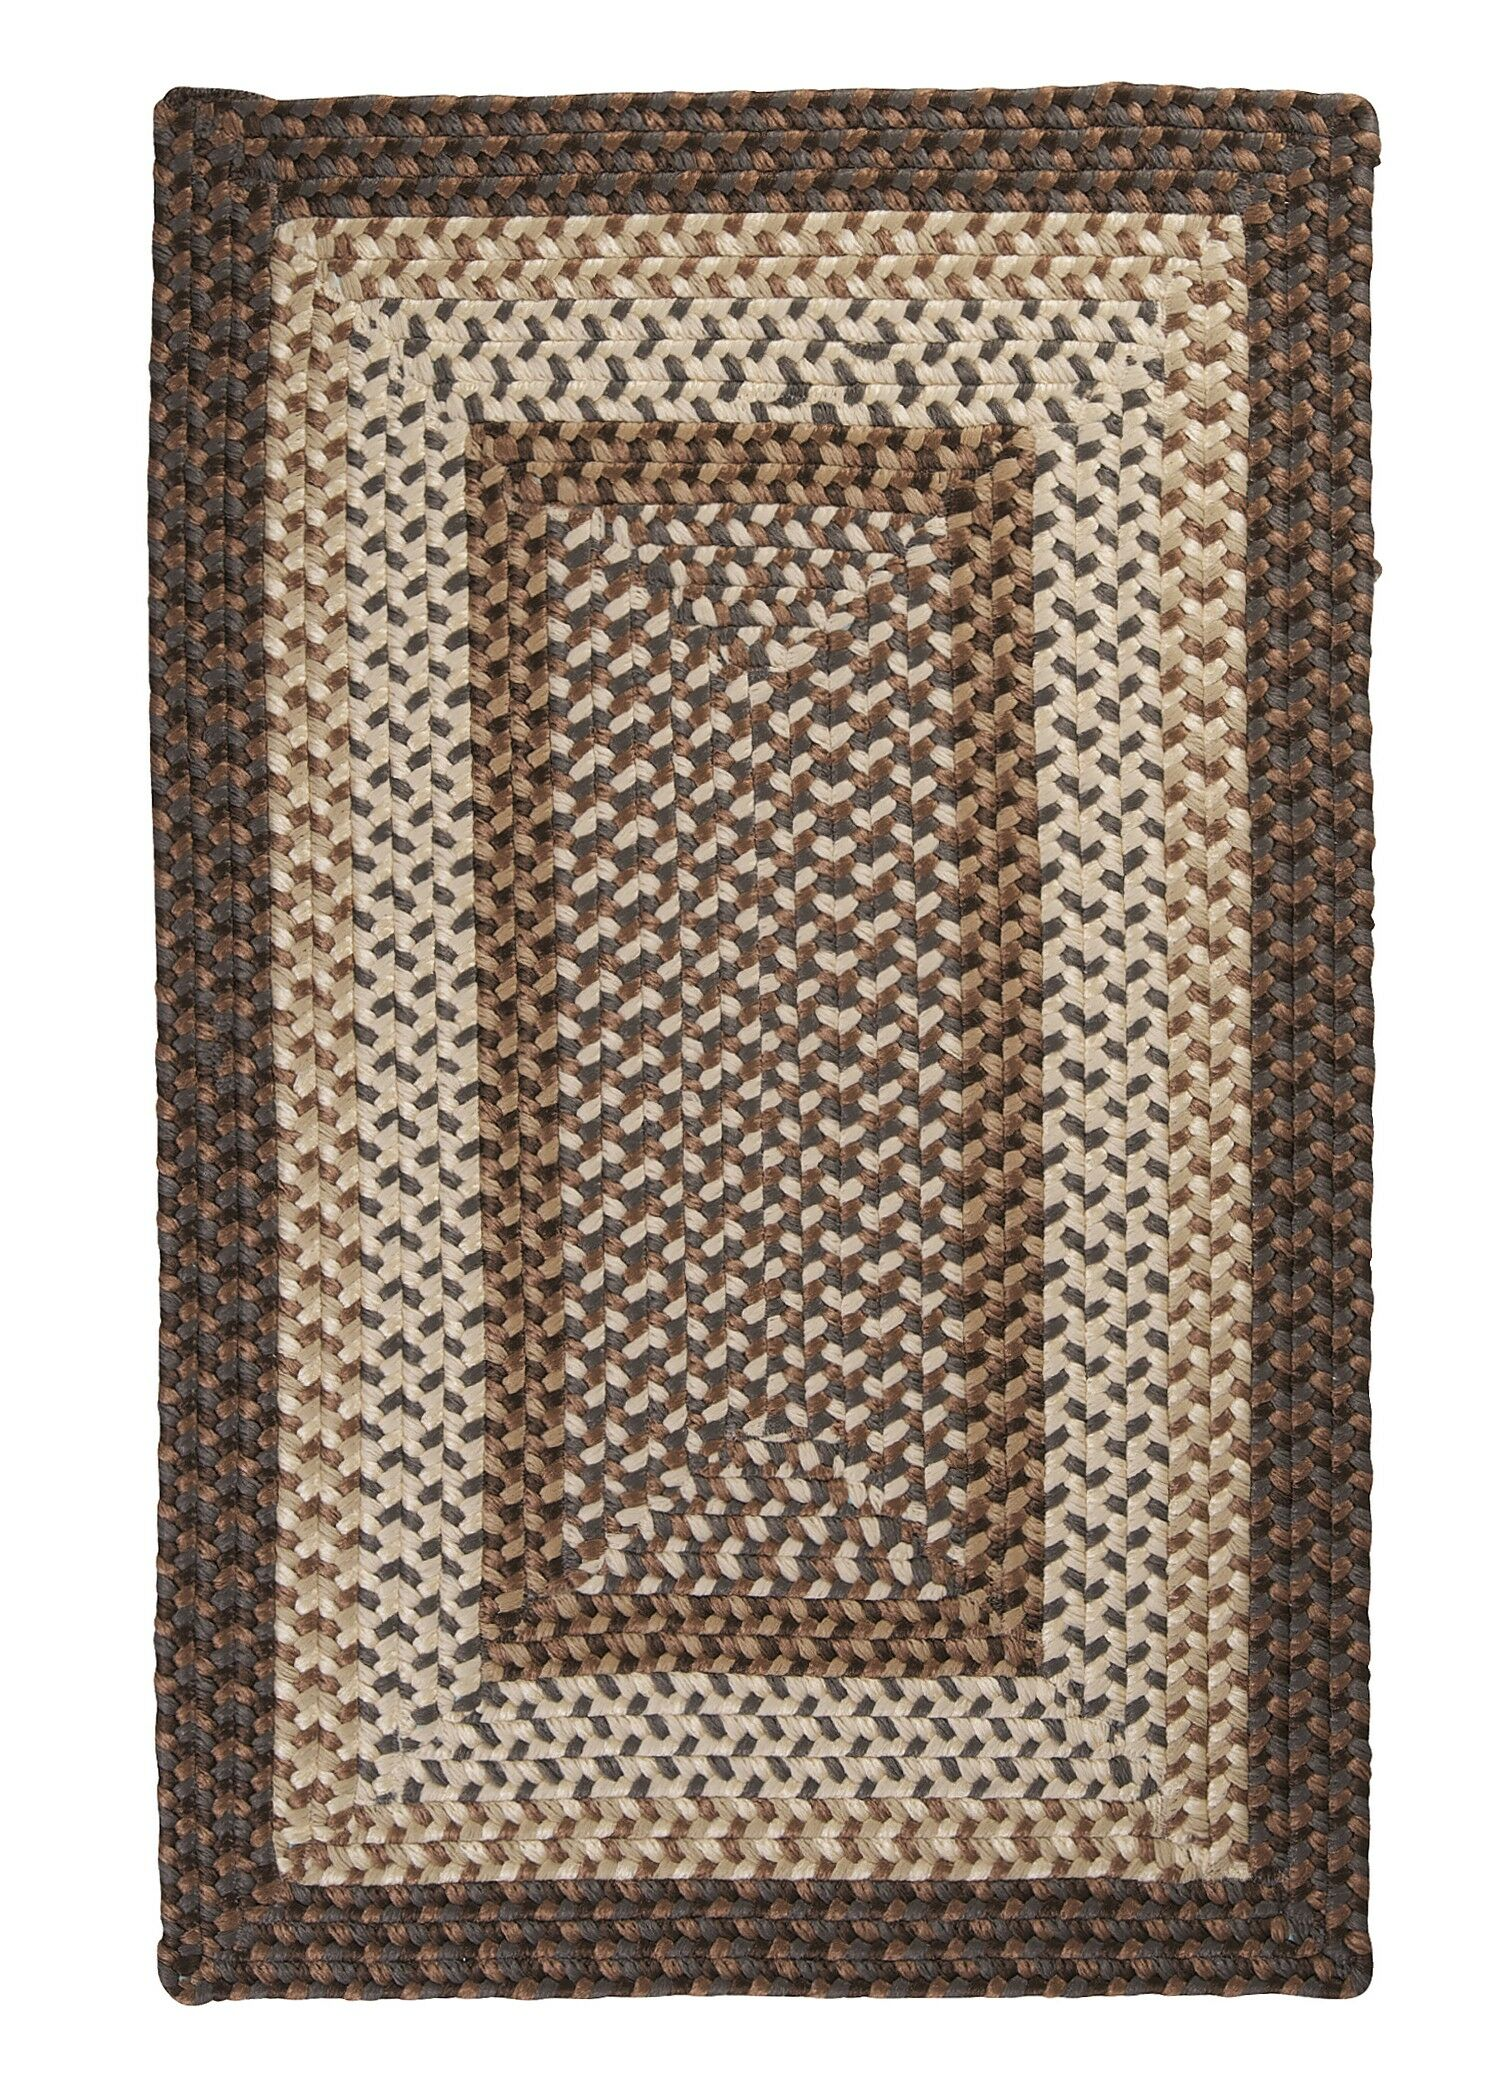 Tiburon Dockside Braided Indoor/Outdoor Area Rug Rug Size: Square 10'